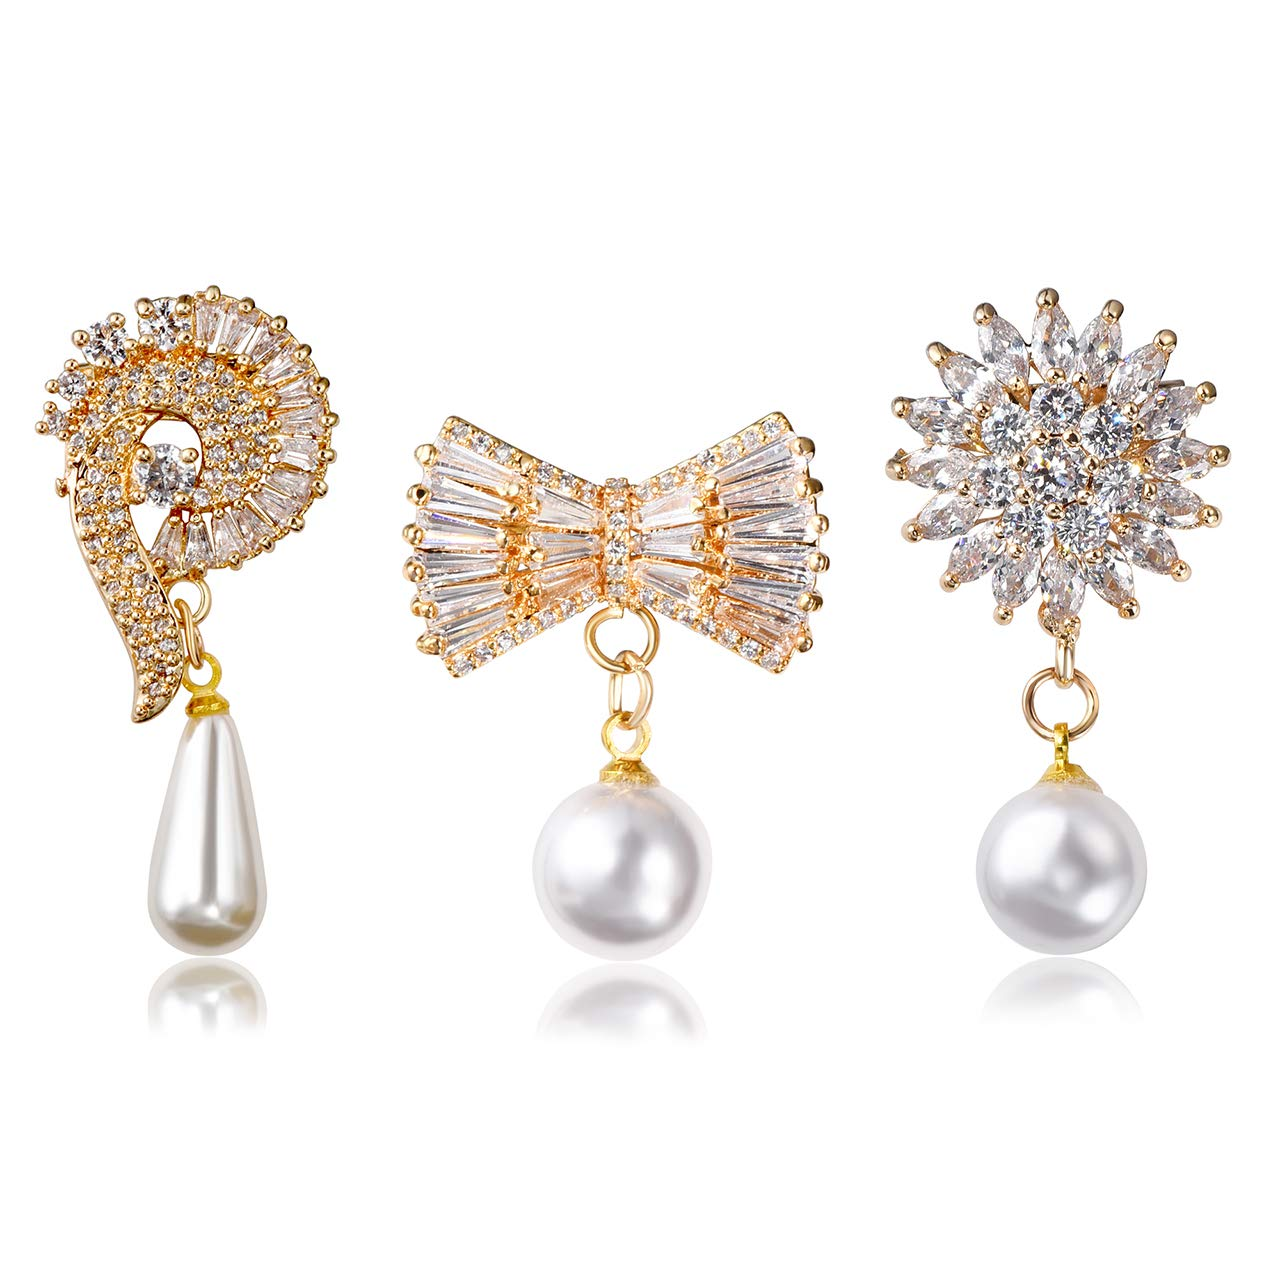 Jovivi 3pcs Clear Cubic Zirconia Crystal Flower Feather Butterfly Safety Pin Brooches Suit Sweater Scarves Scarf Brooch Charm